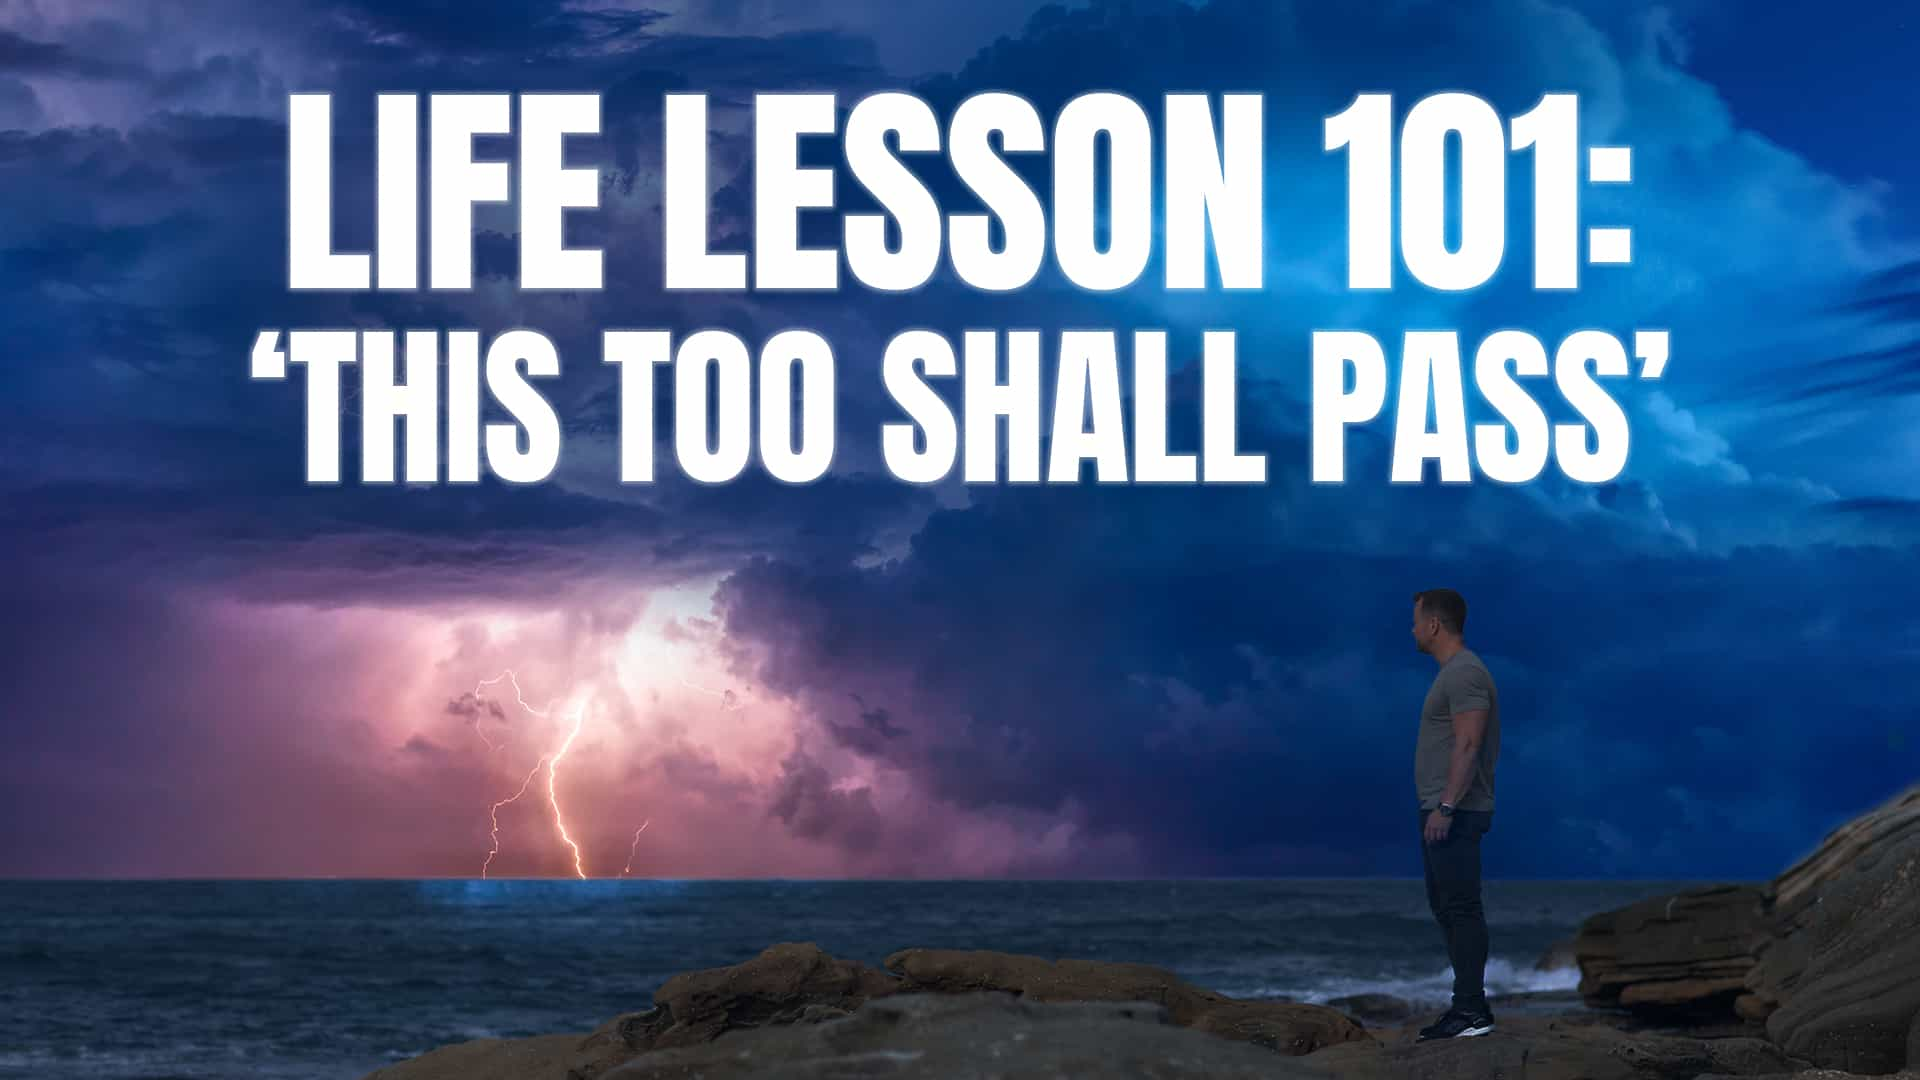 Life lesson 101: 'This too shall pass'